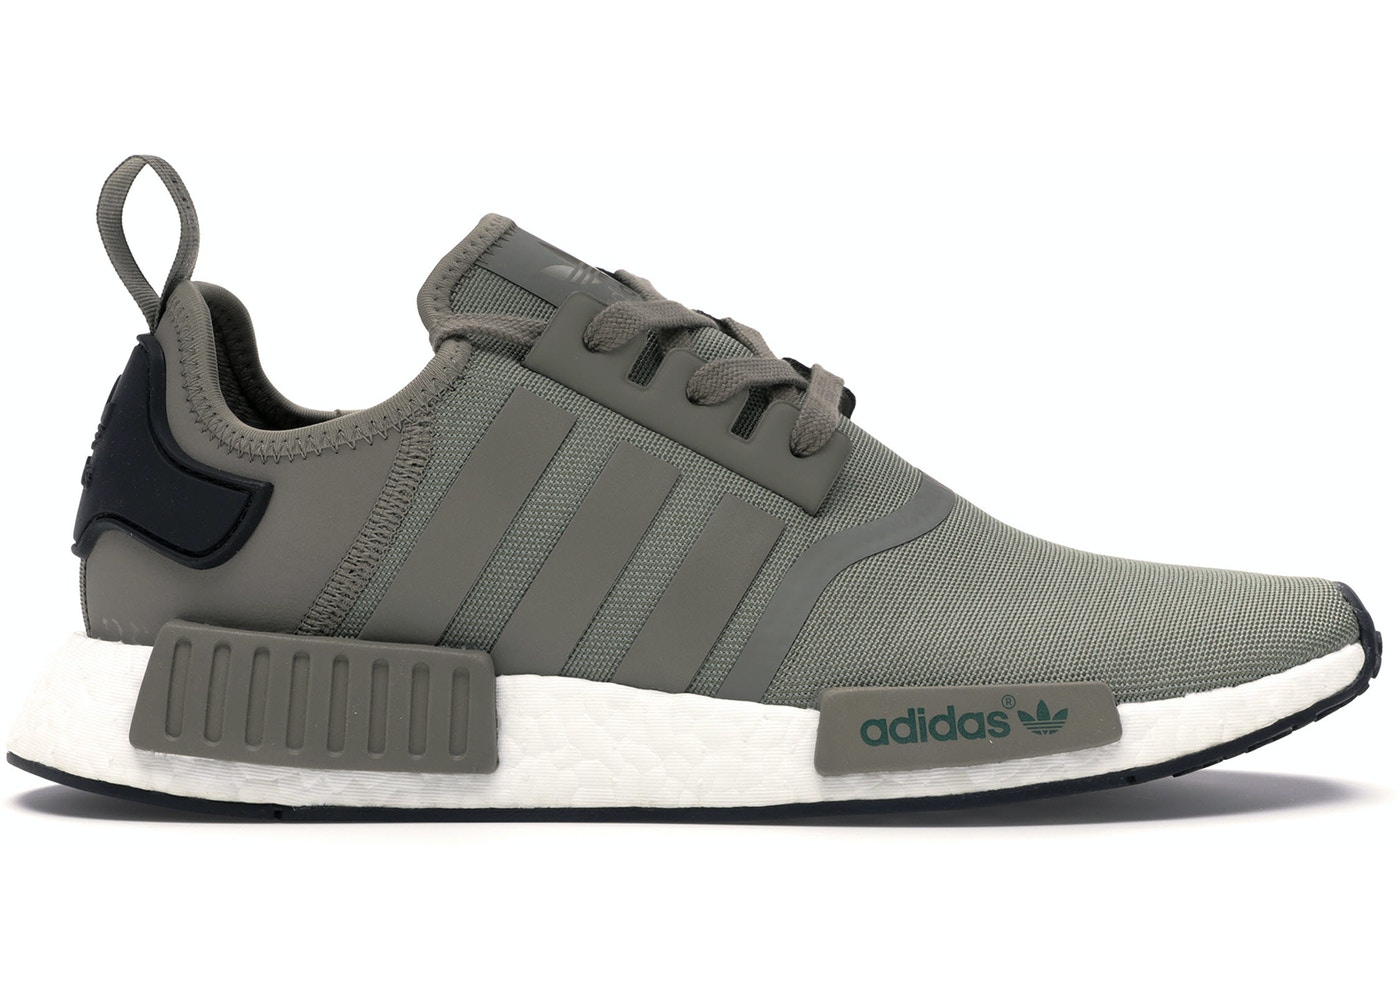 ab8c9d9fcf922 adidas NMD Size 9 Shoes - Volatility